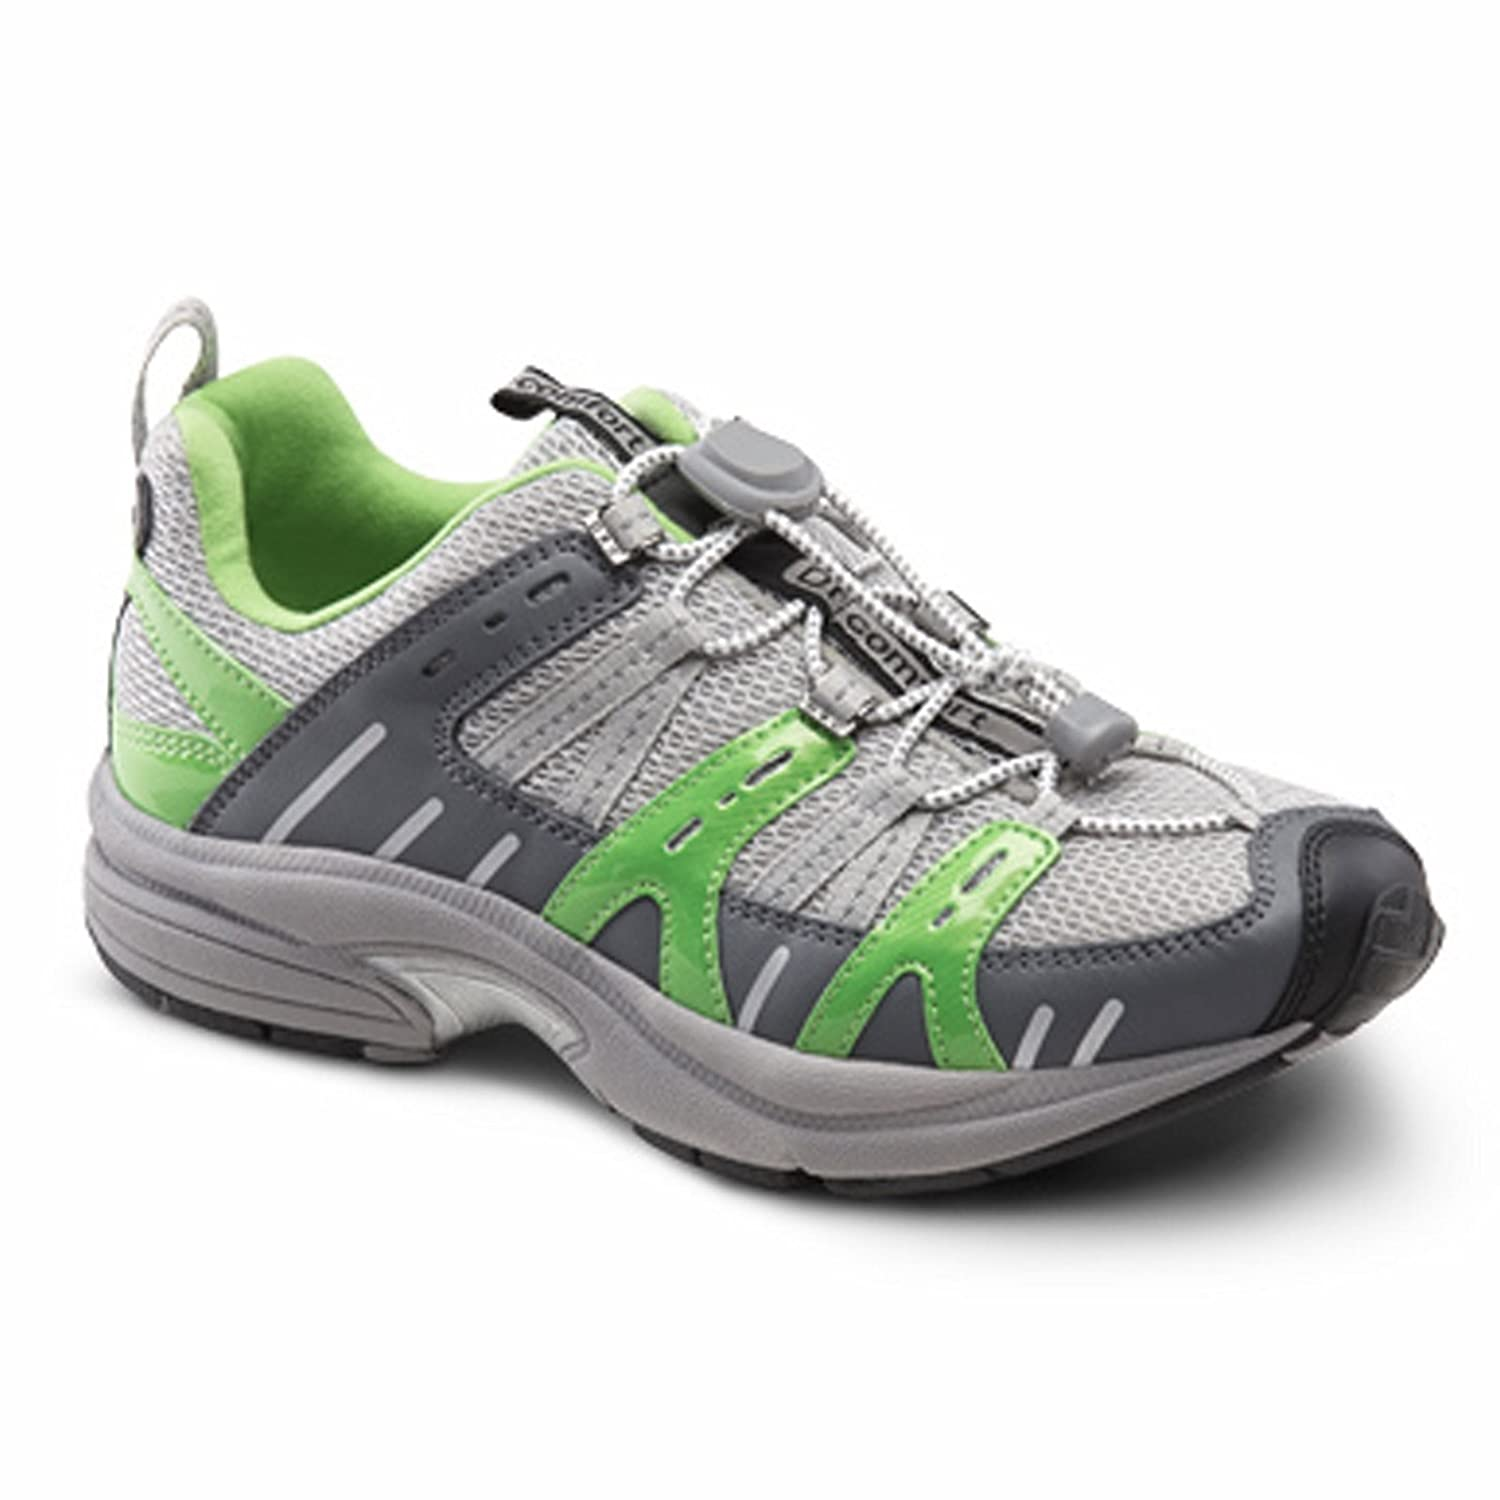 Dr. Comfort Women's Refresh Diabetic Athletic Shoes B00IO82VKC 6 M US|Lime